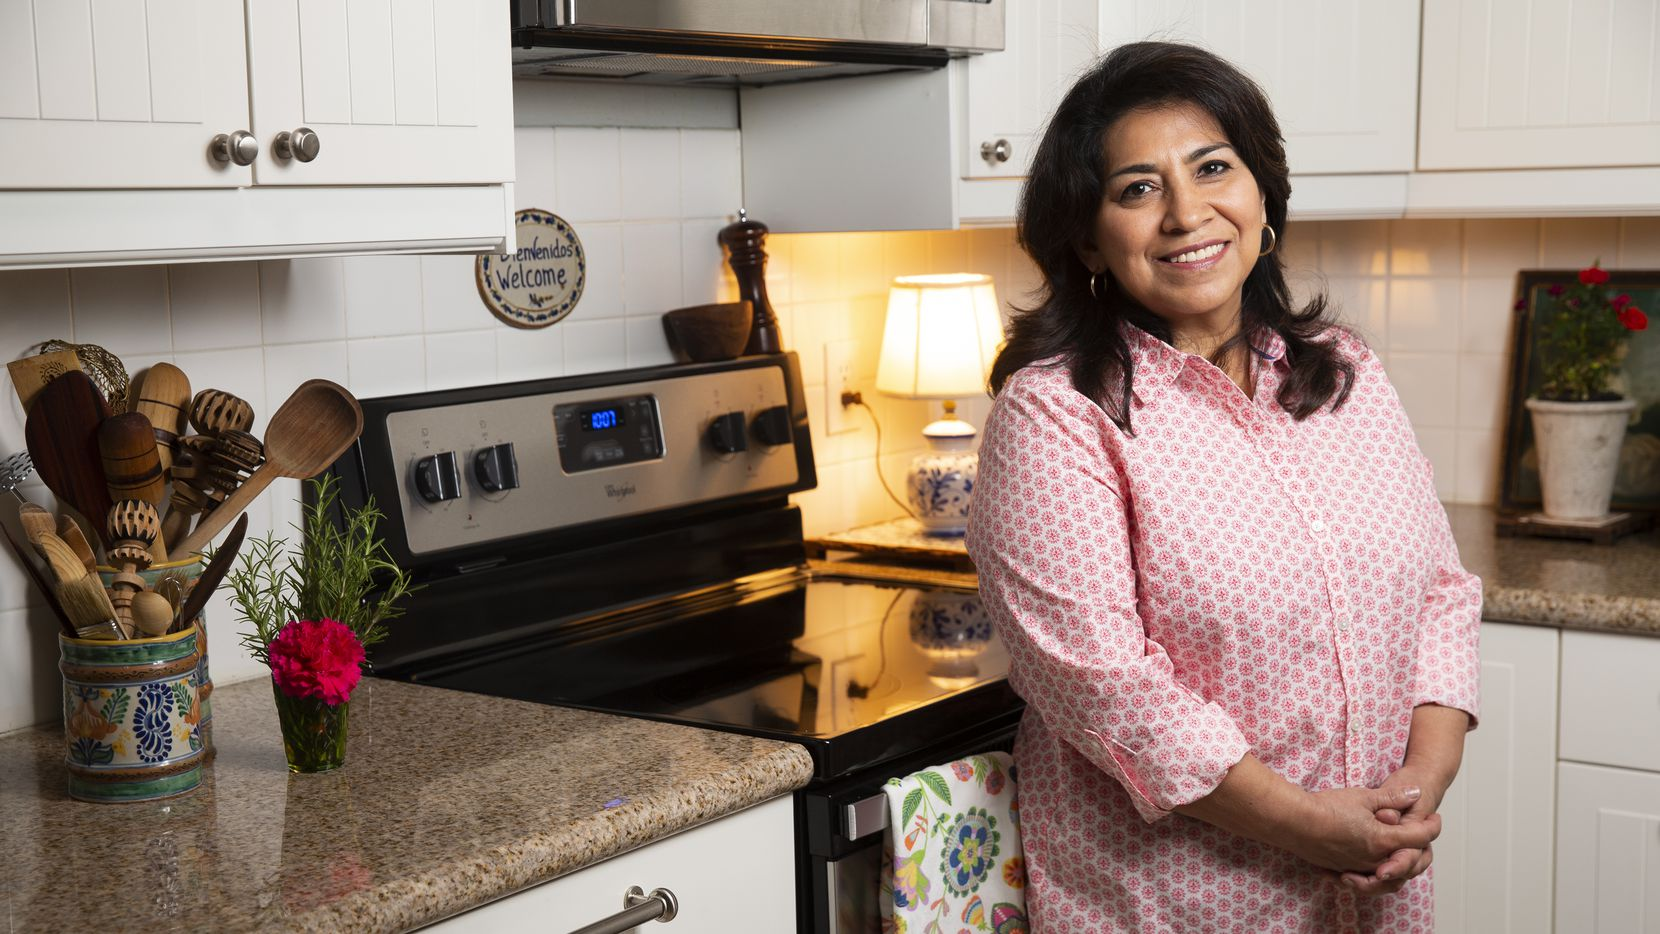 Local author Mely Martínez poses for a photo in her kitchen on Sept. 10, 2020 in Frisco.